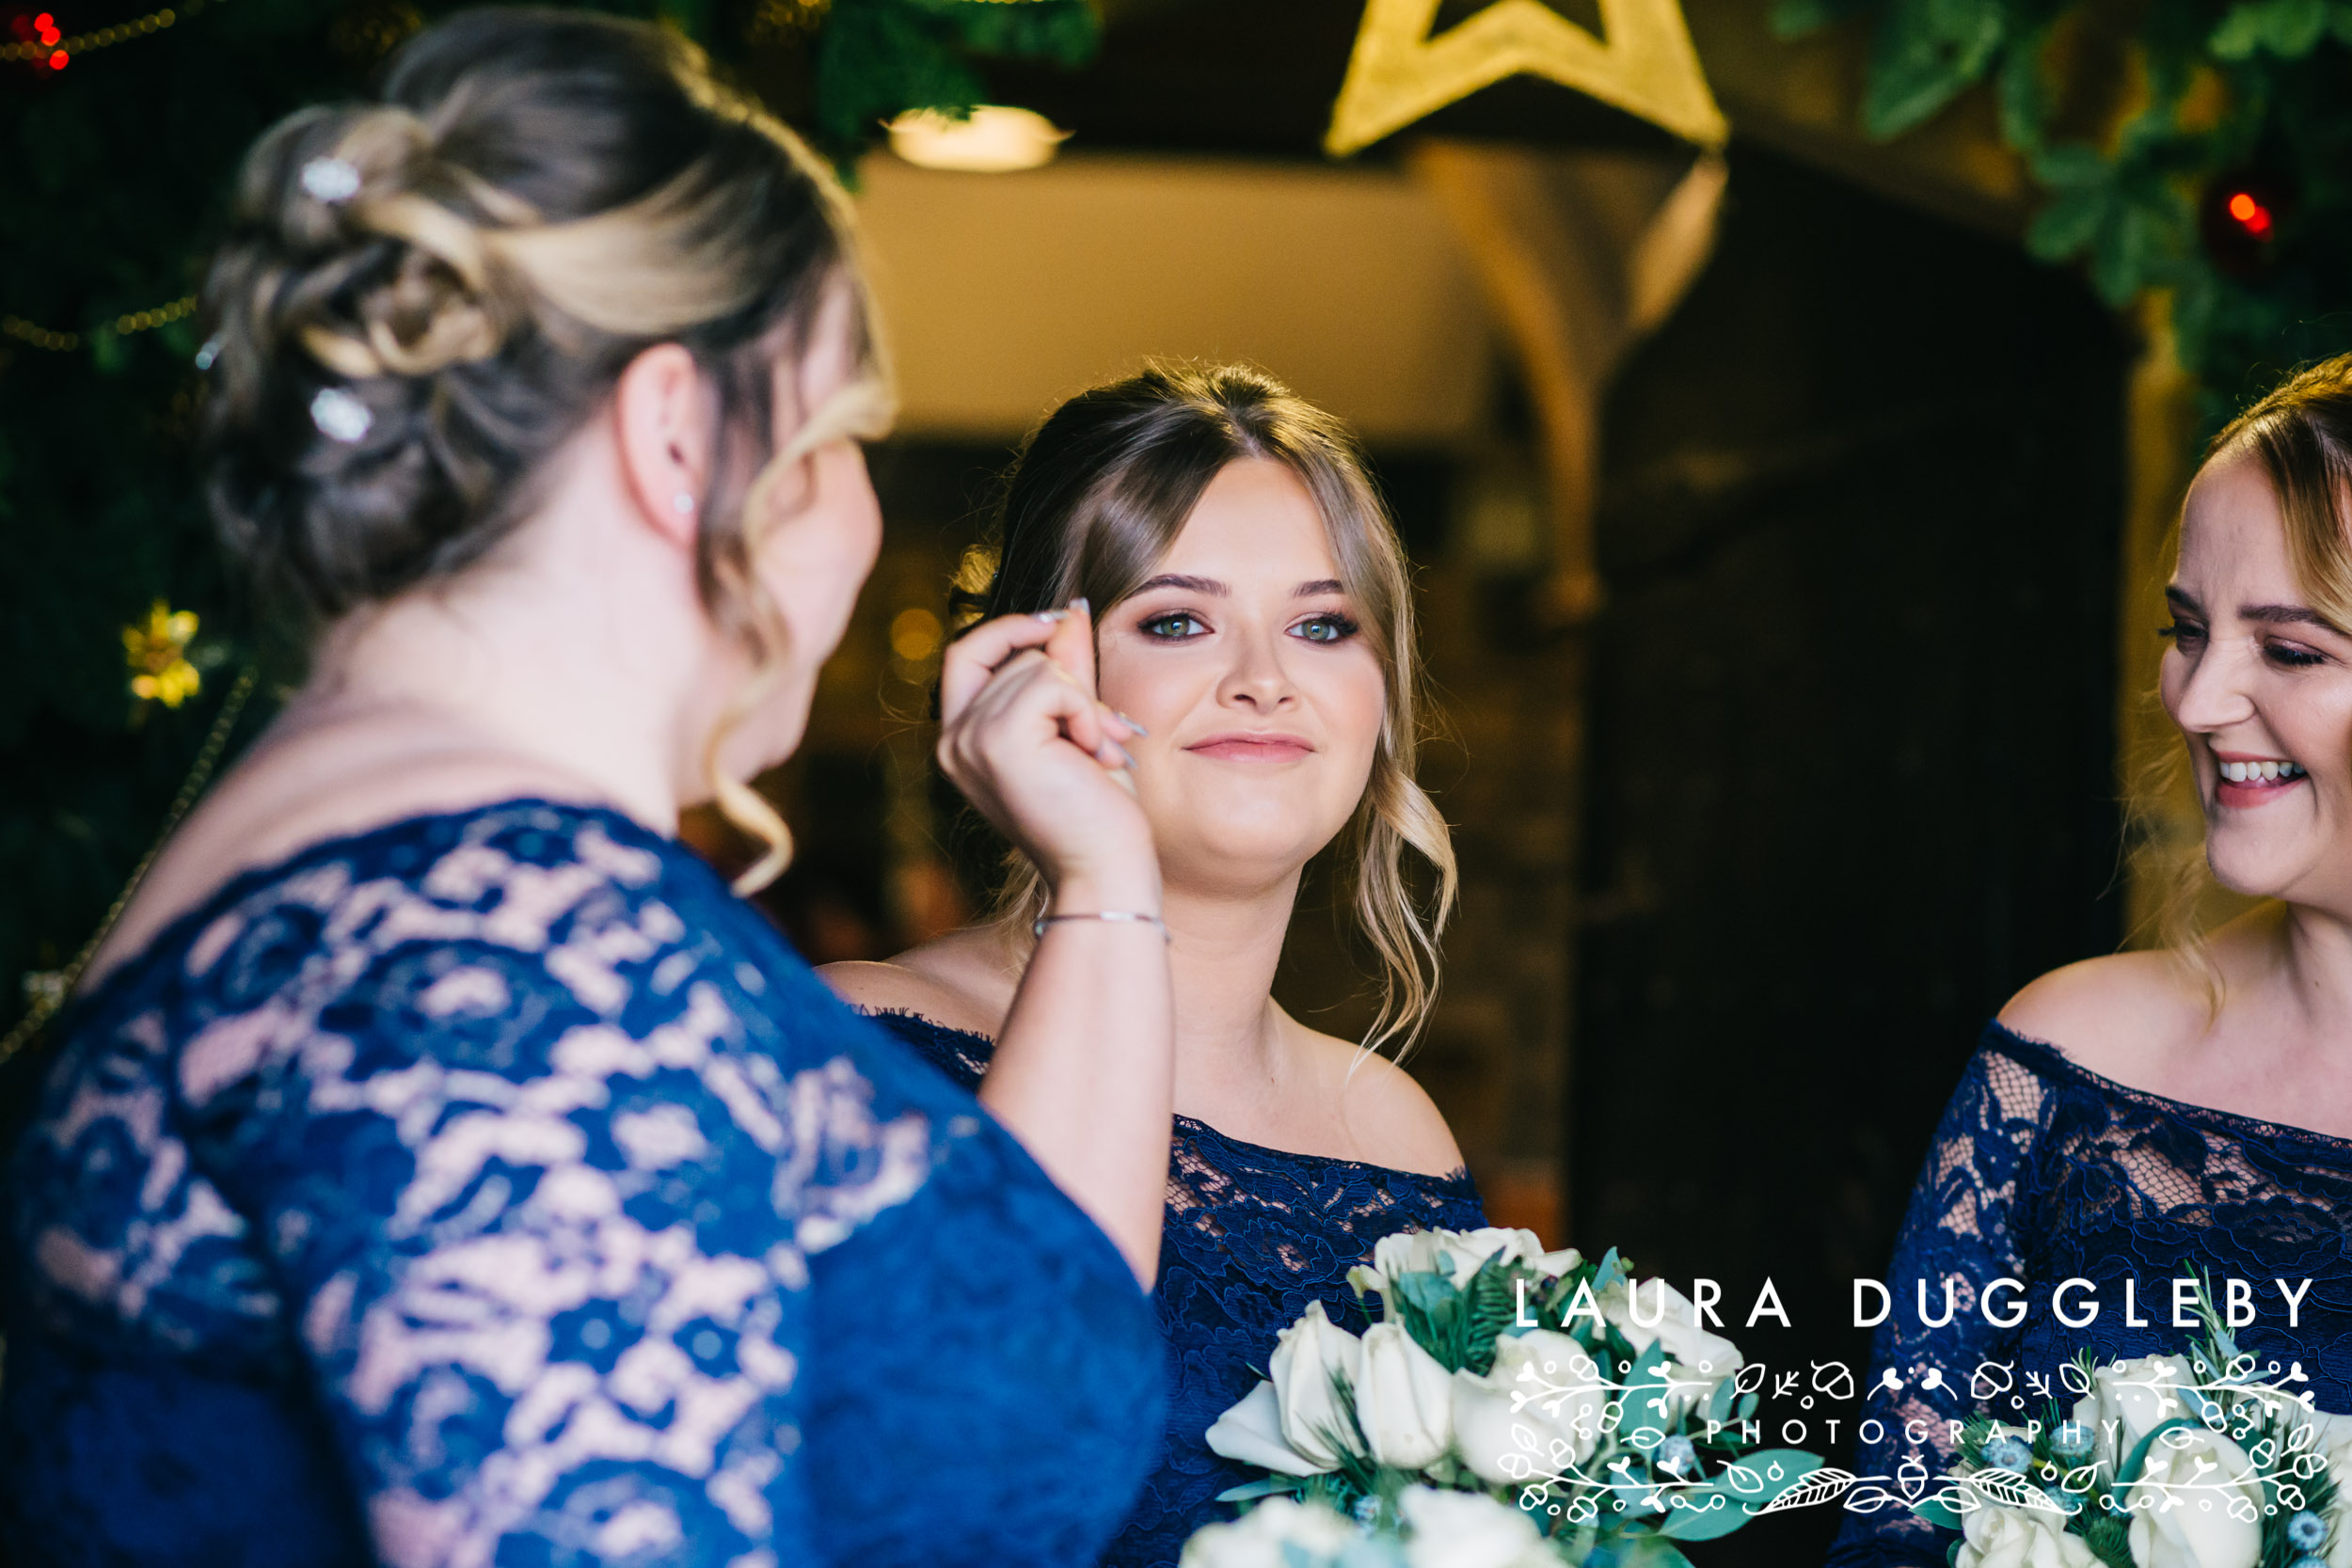 Laura Duggleby Stanley House Wedding Photographer-9.jpg